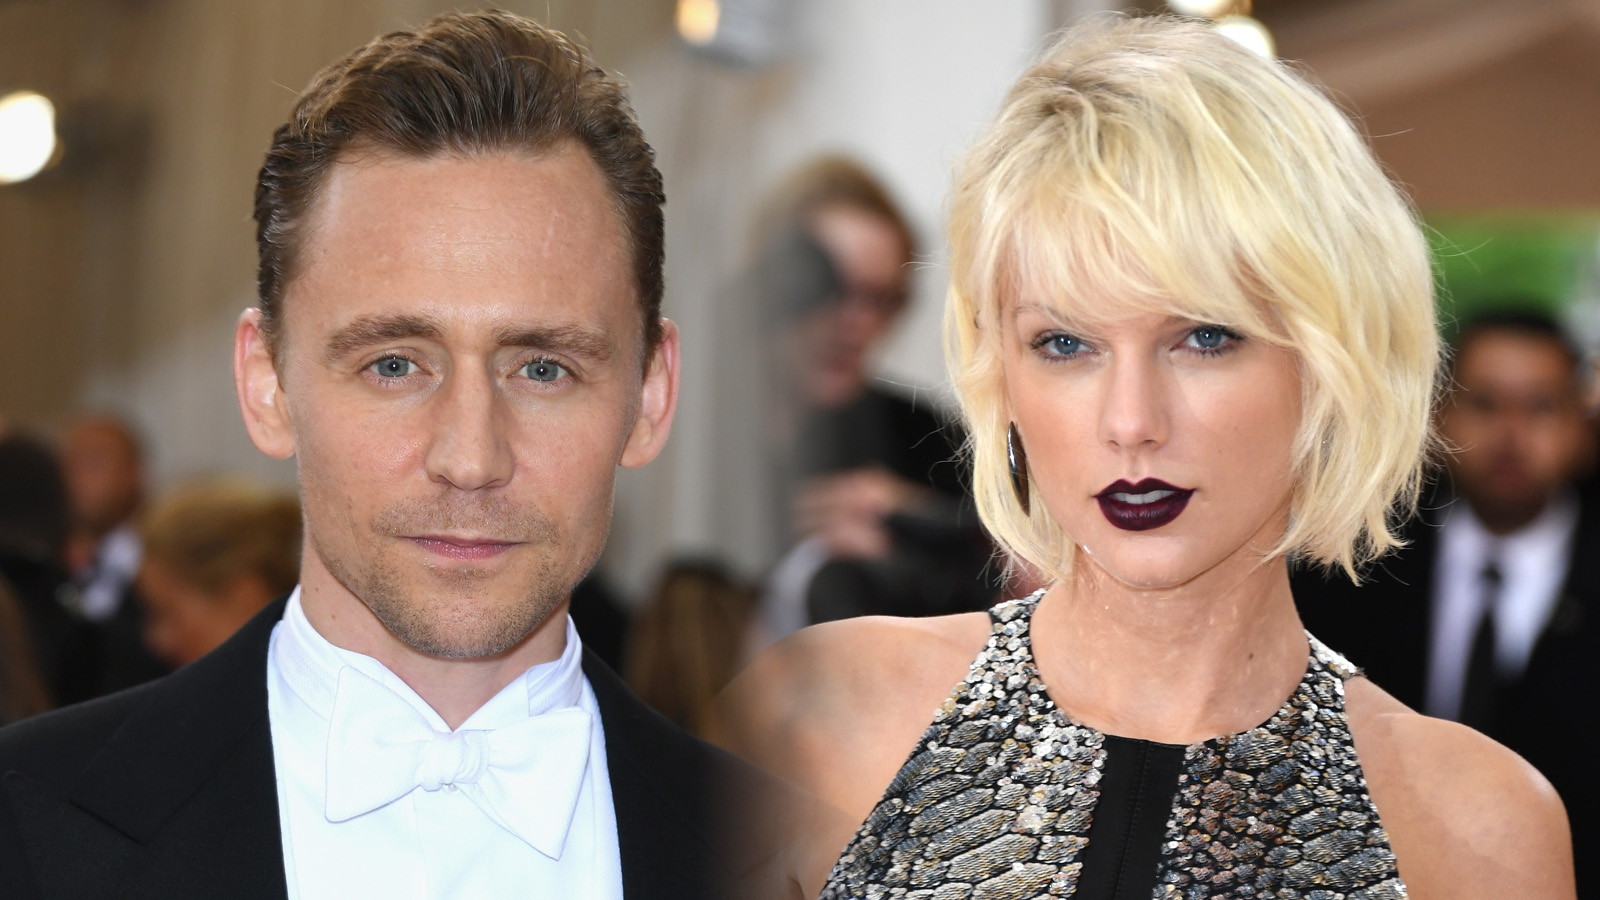 Taylor Swift Whisks Tom Hiddleston On Her Private Jet To Spend 24 Sparks Fly As Hiddleswift Meet The Parents